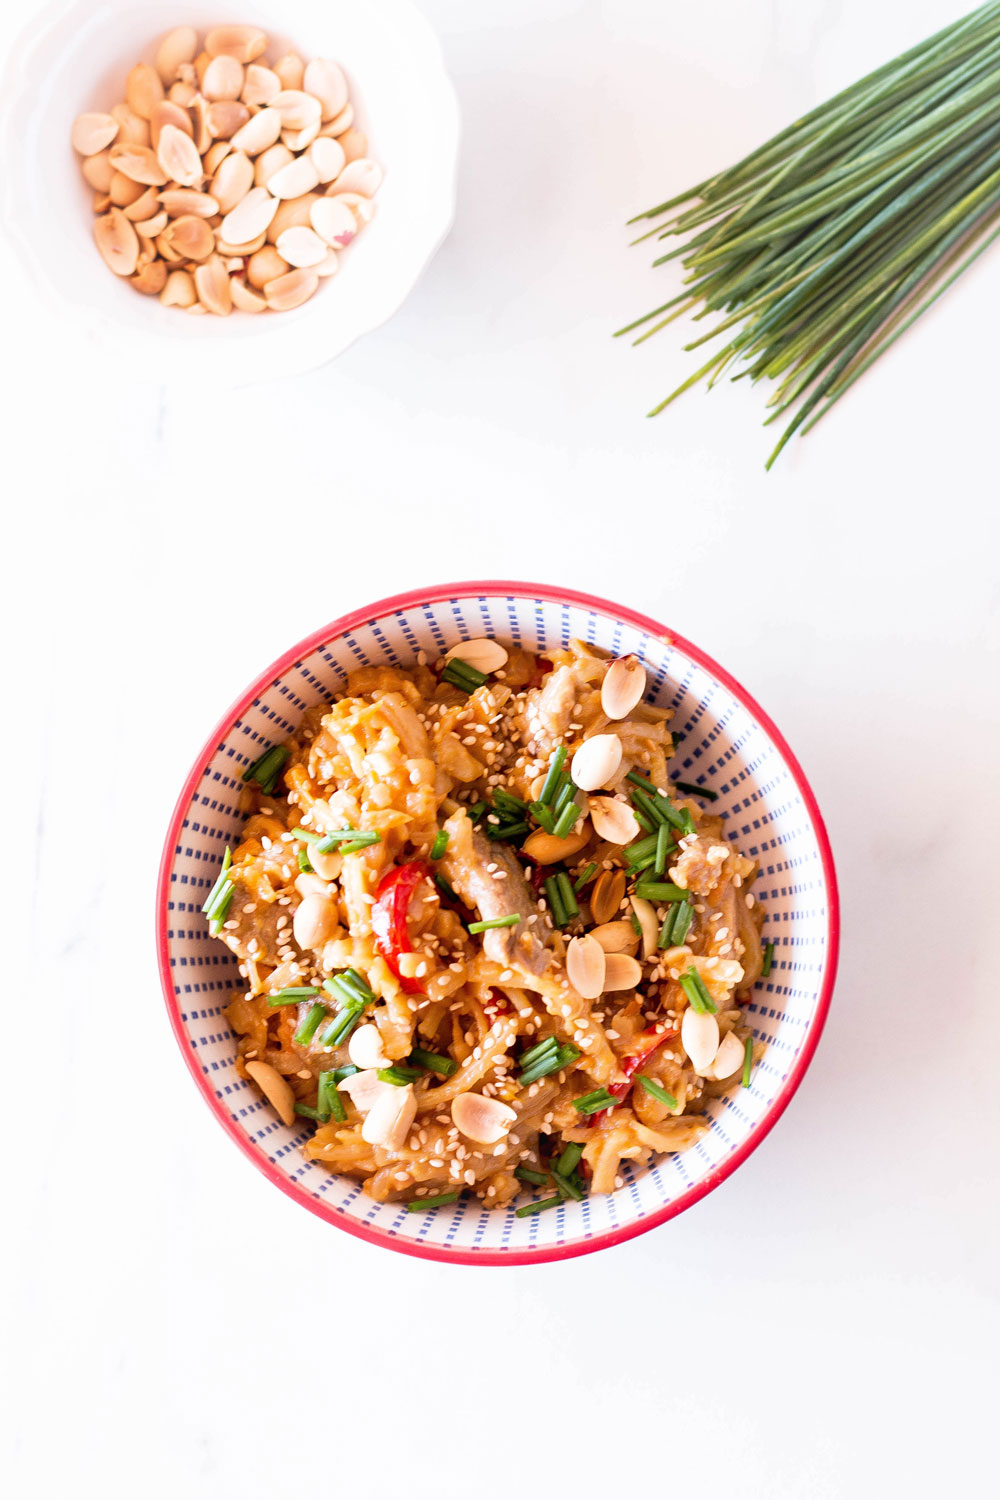 This 20-Minute Creamy Pork Pad Thai Recipe is easy and simple enough for any aspiring Thai cook to make. A hearty, filling, comforting dish with tons of texture, protein, and big flavor! https://www.spotebi.com/recipes/20-minute-creamy-pork-pad-thai-recipe/